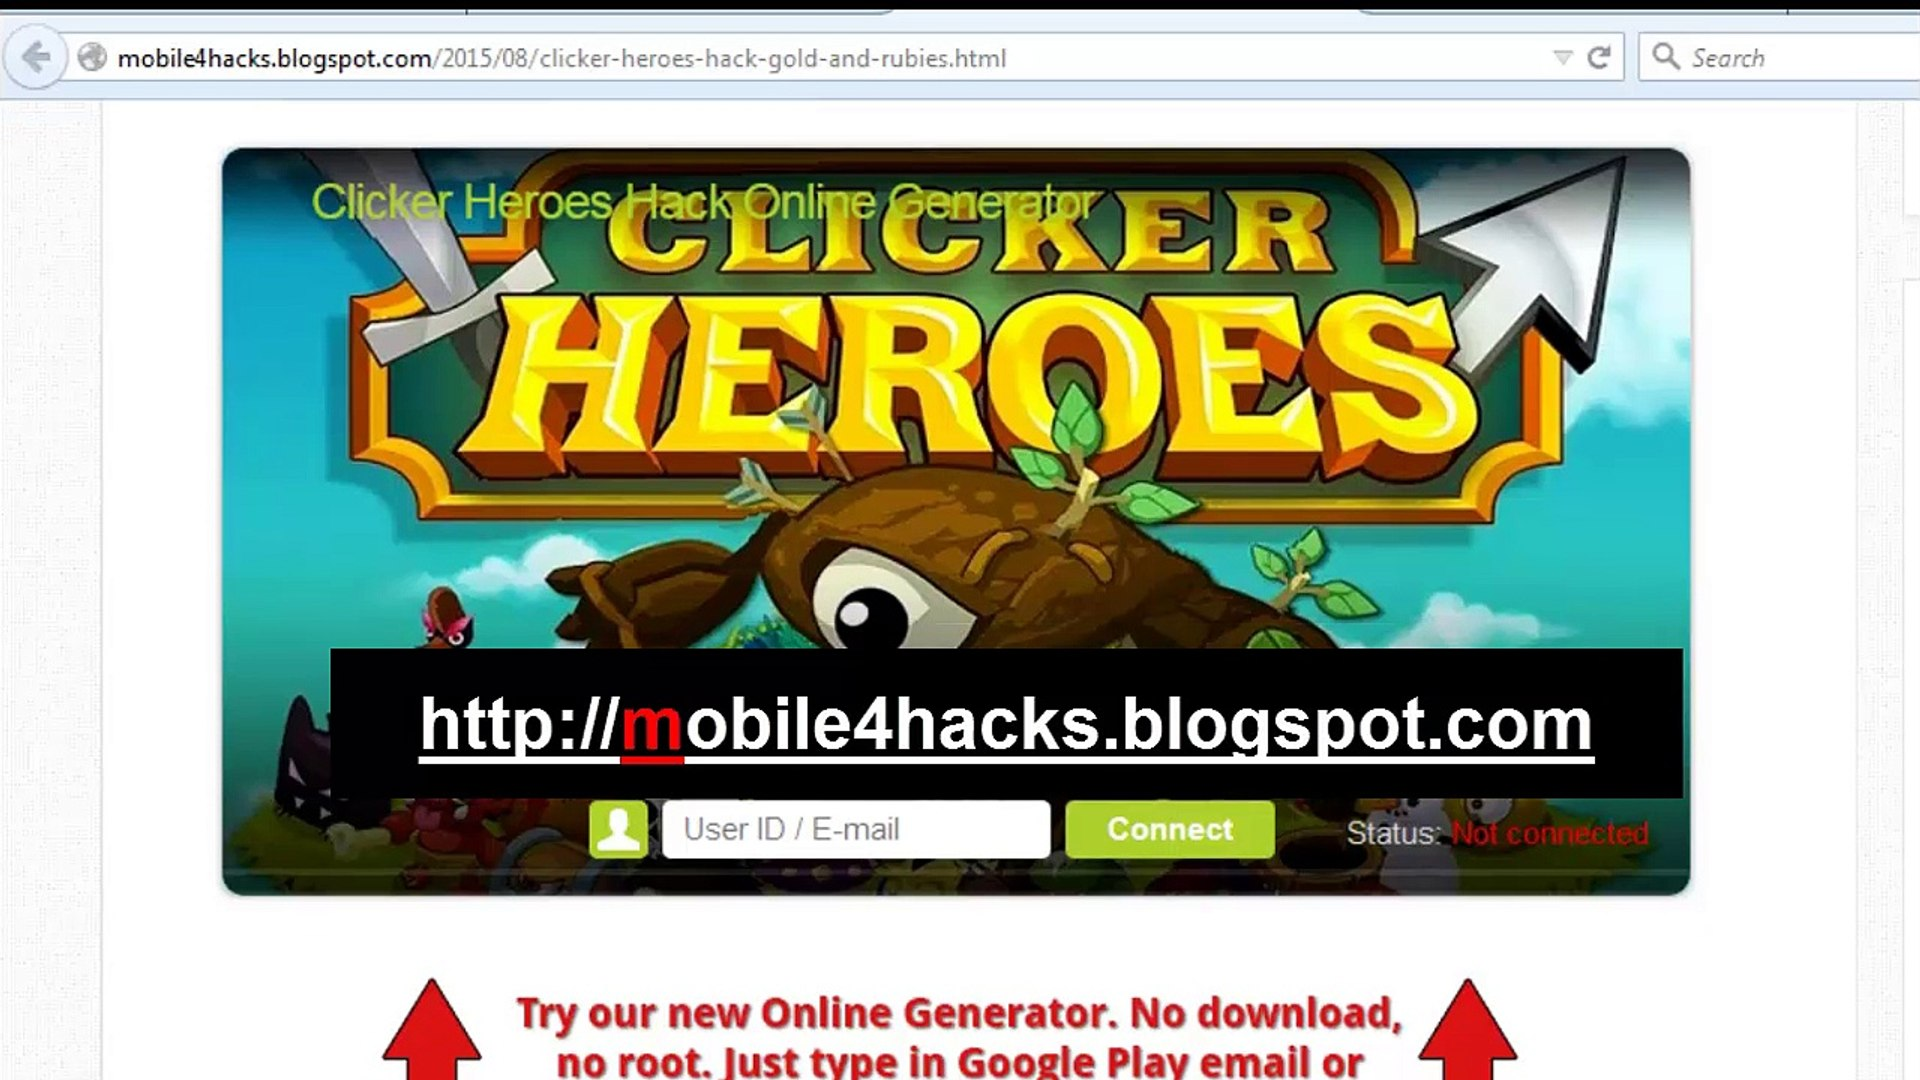 Tutorial Clicker Heroes how to hack gold and rubies cheat